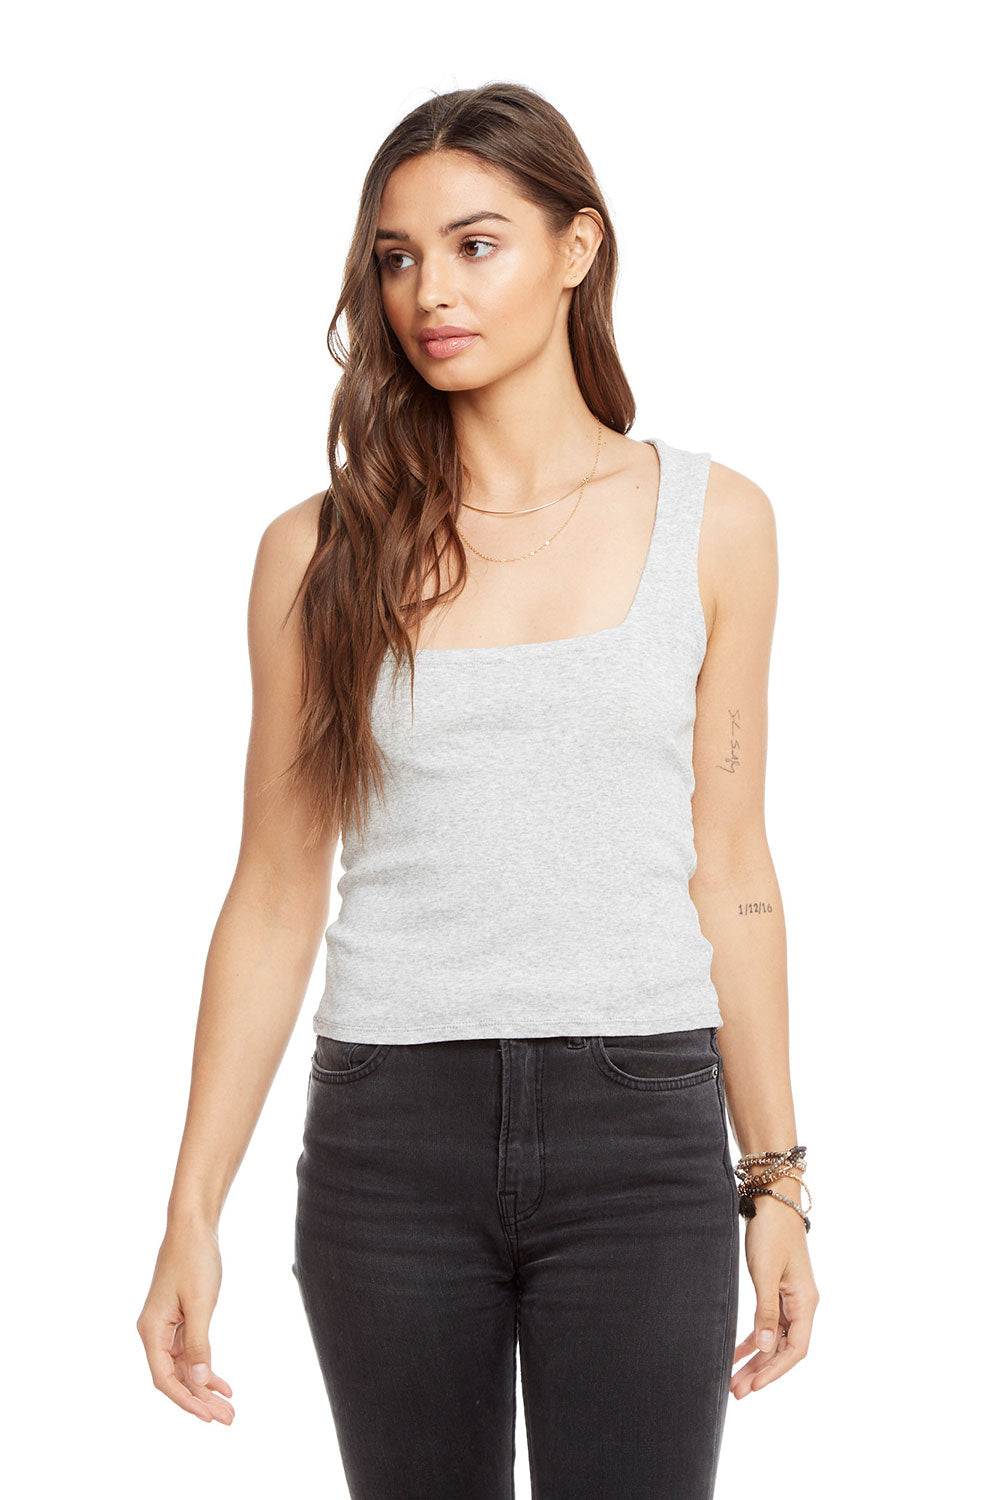 Baby Rib Square Neck Cropped Tank WOMENS chaserbrand4.myshopify.com